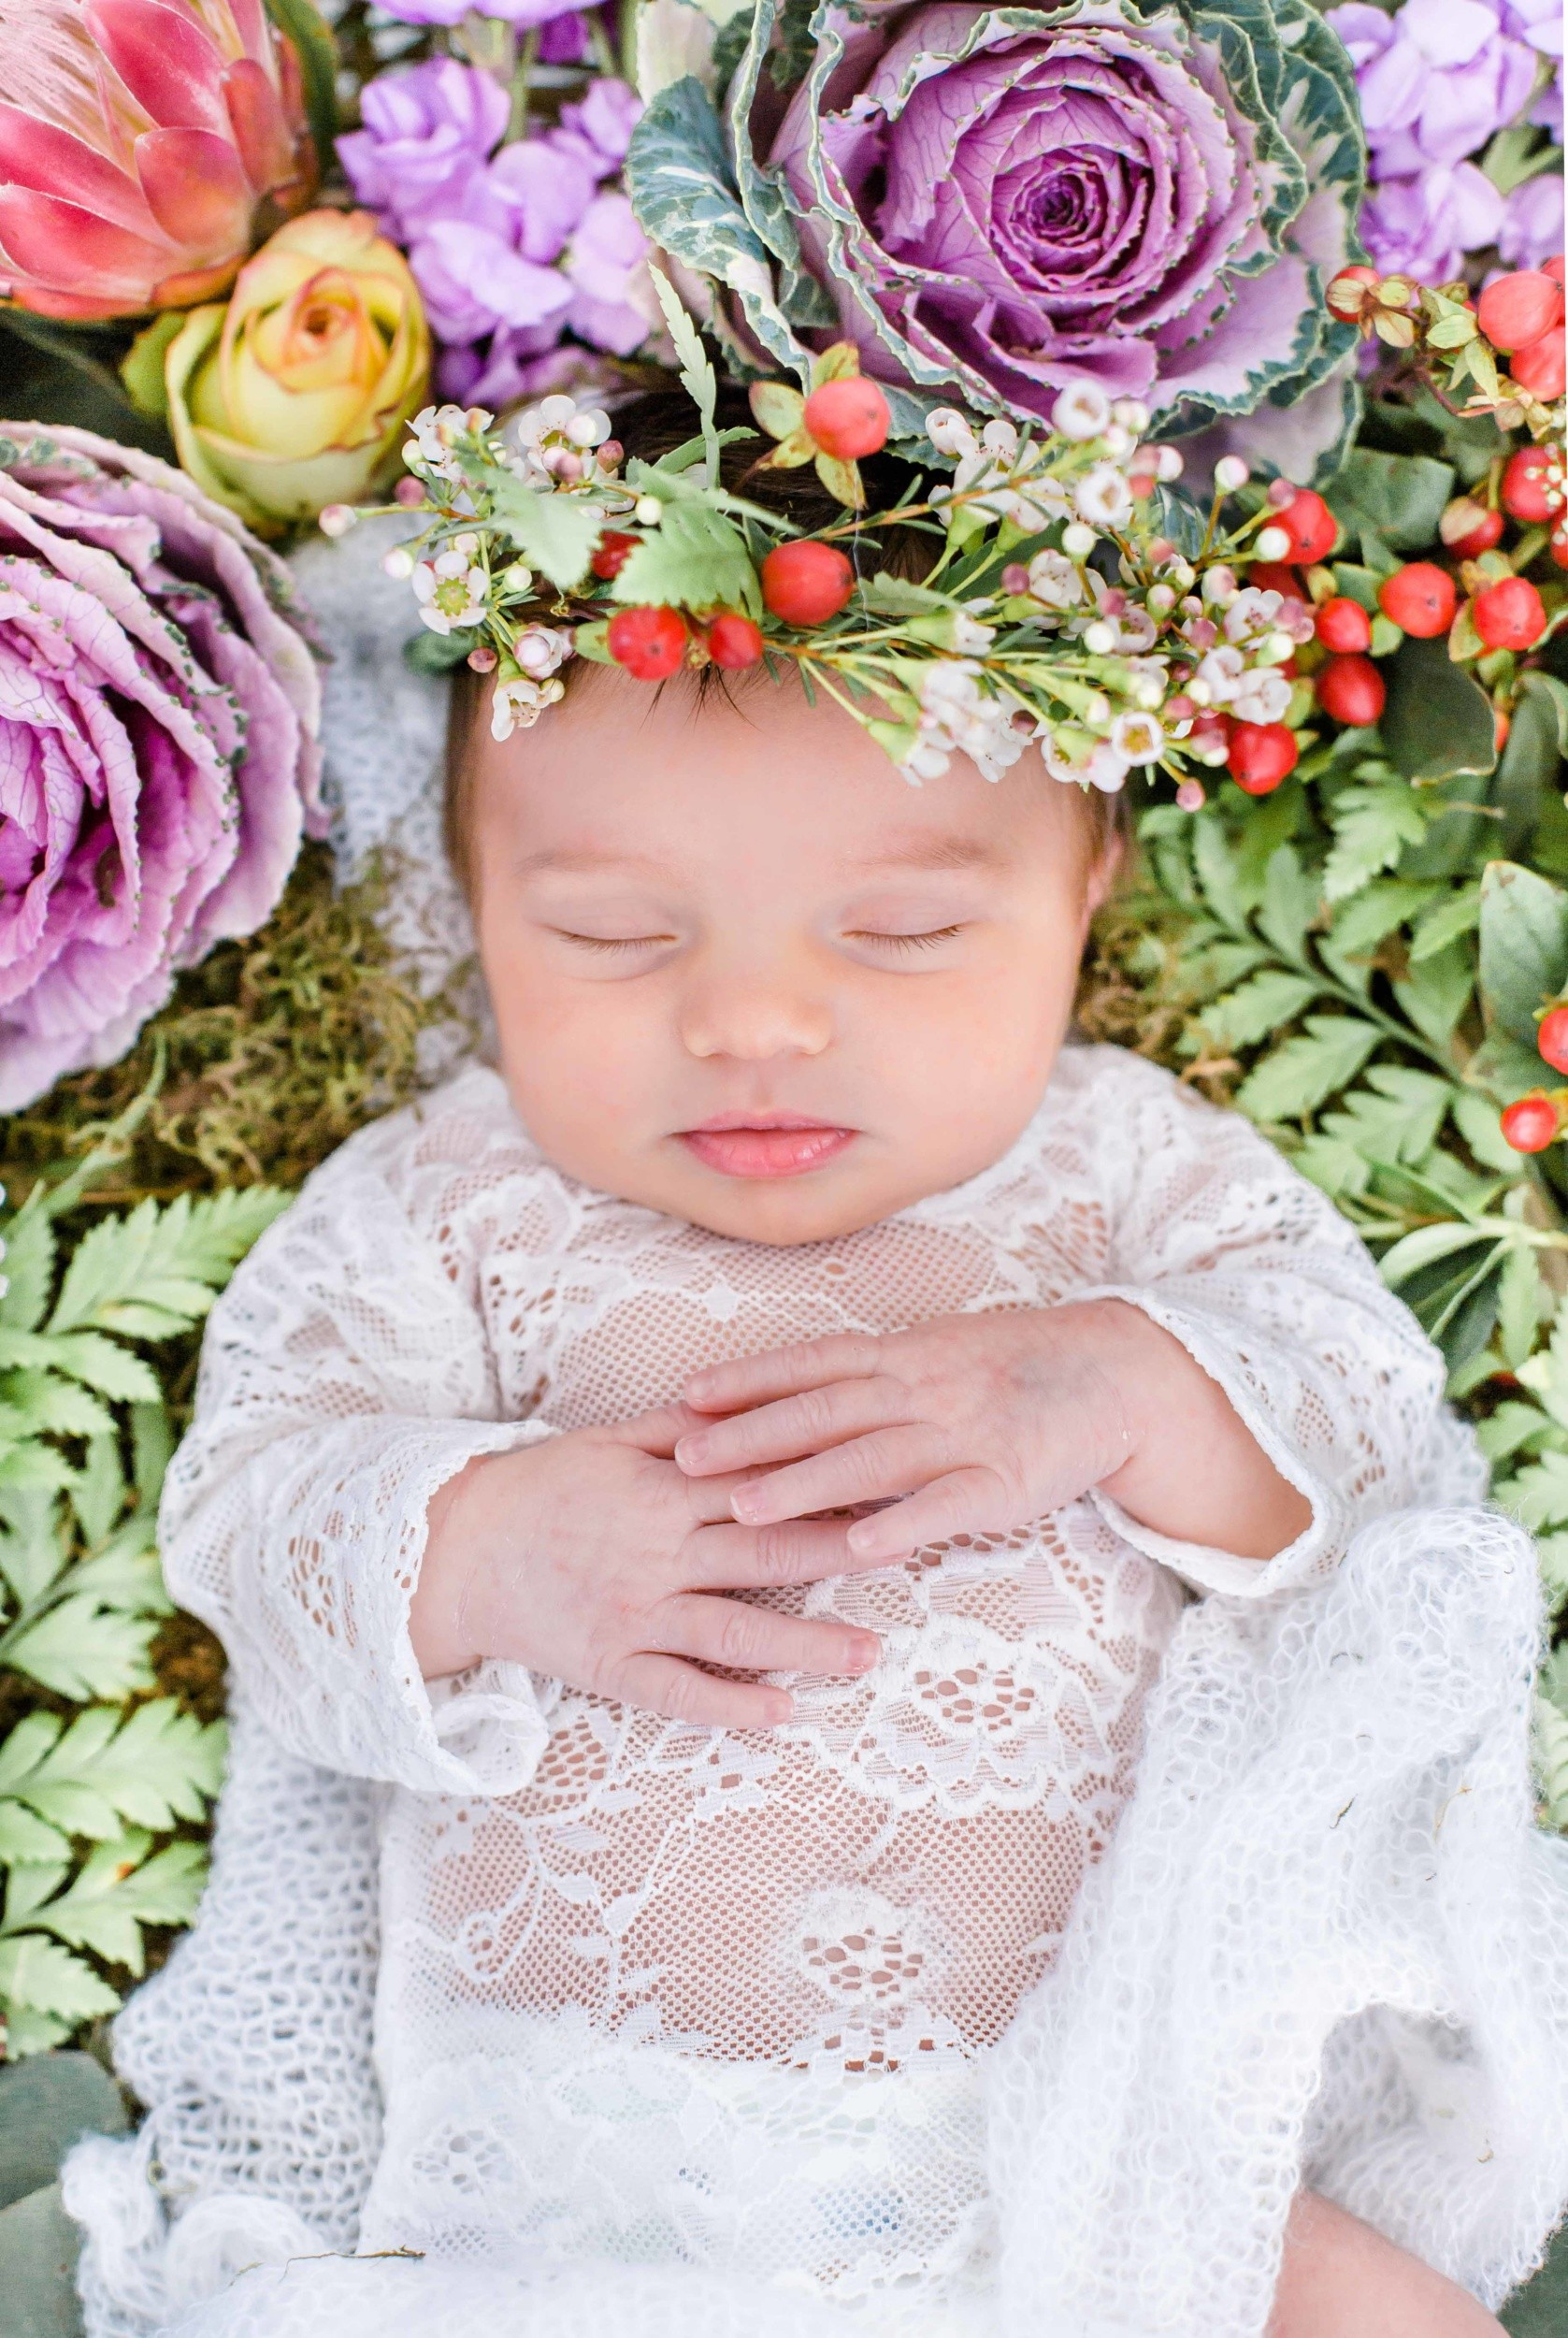 Velani Venter, Magical floral Newborn Photoshoot by Velani Venter